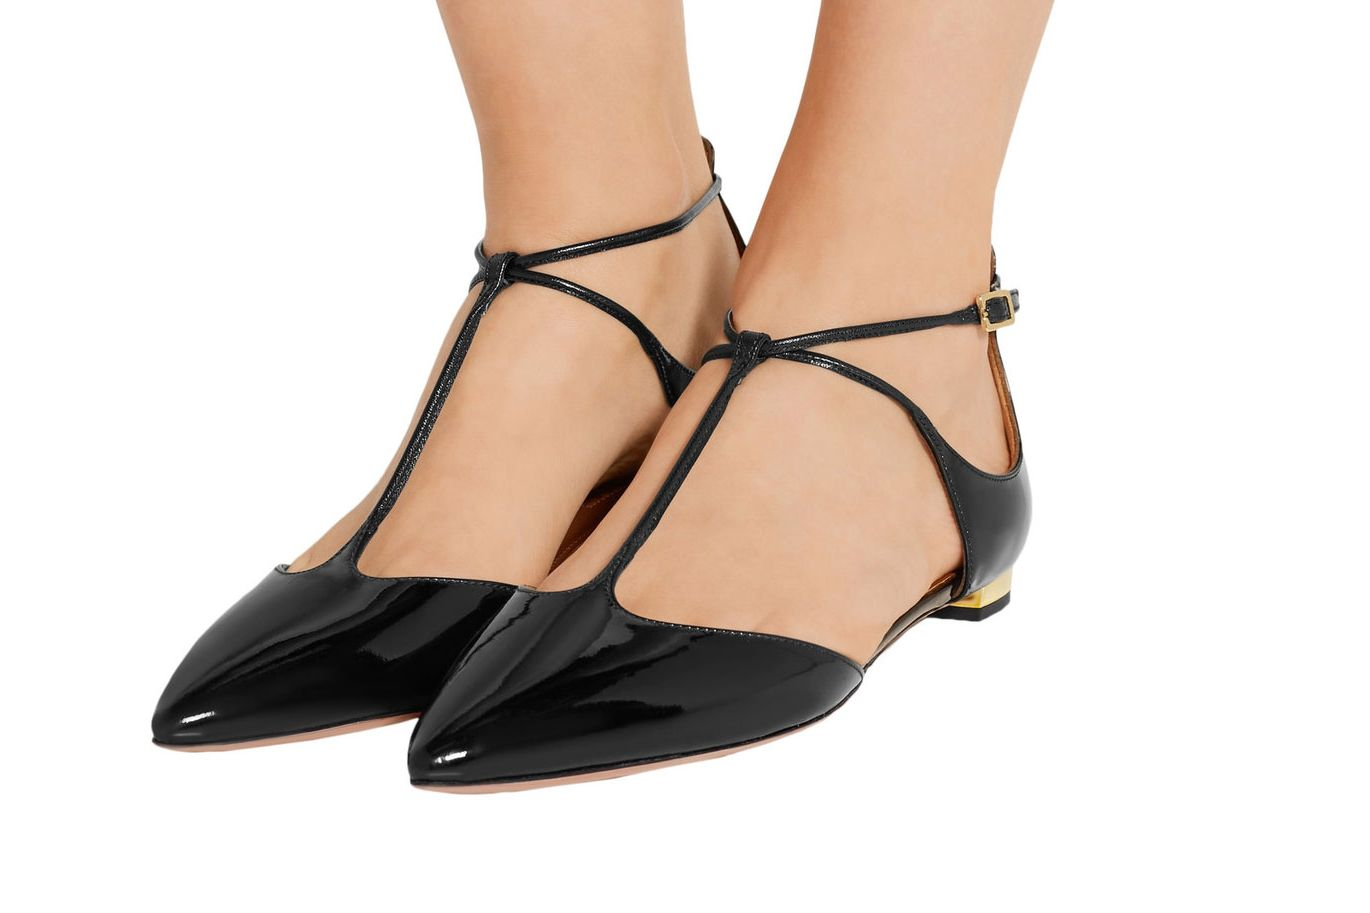 Aquazzura Point Toe Flats